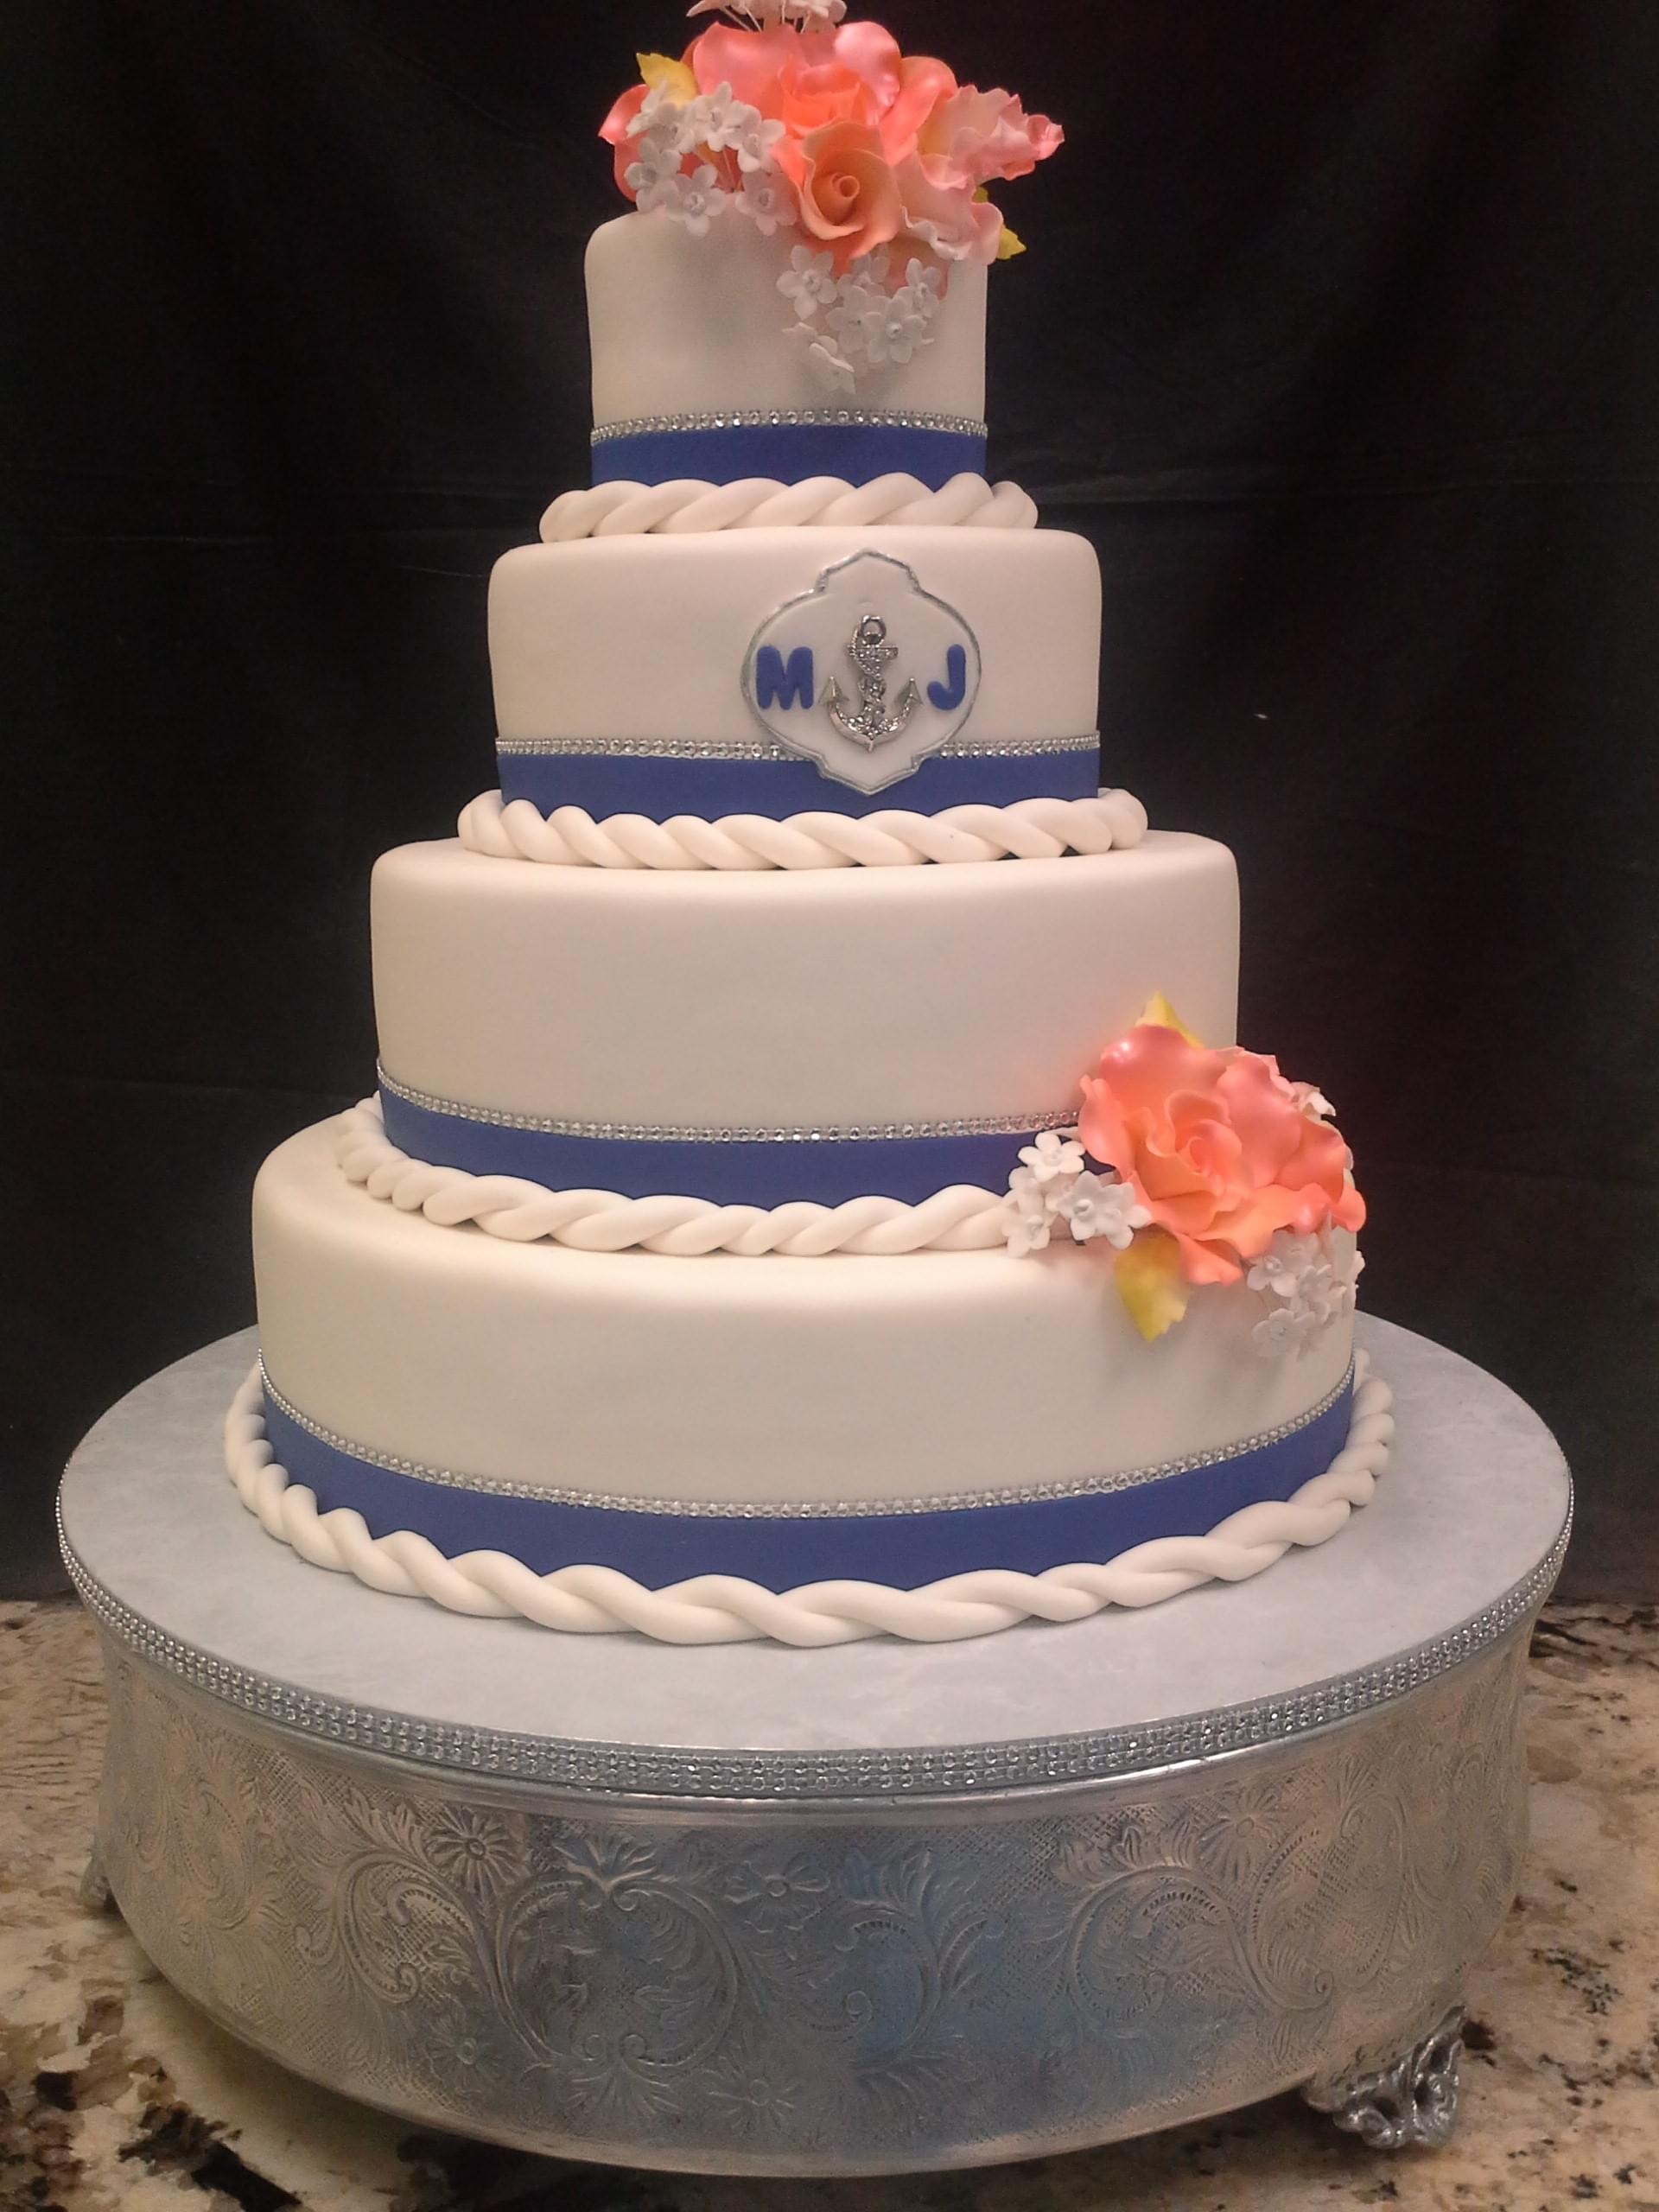 Wedding Cakes Pictures.Weddings Cakes By Ron Sarasota S 1 Bakery